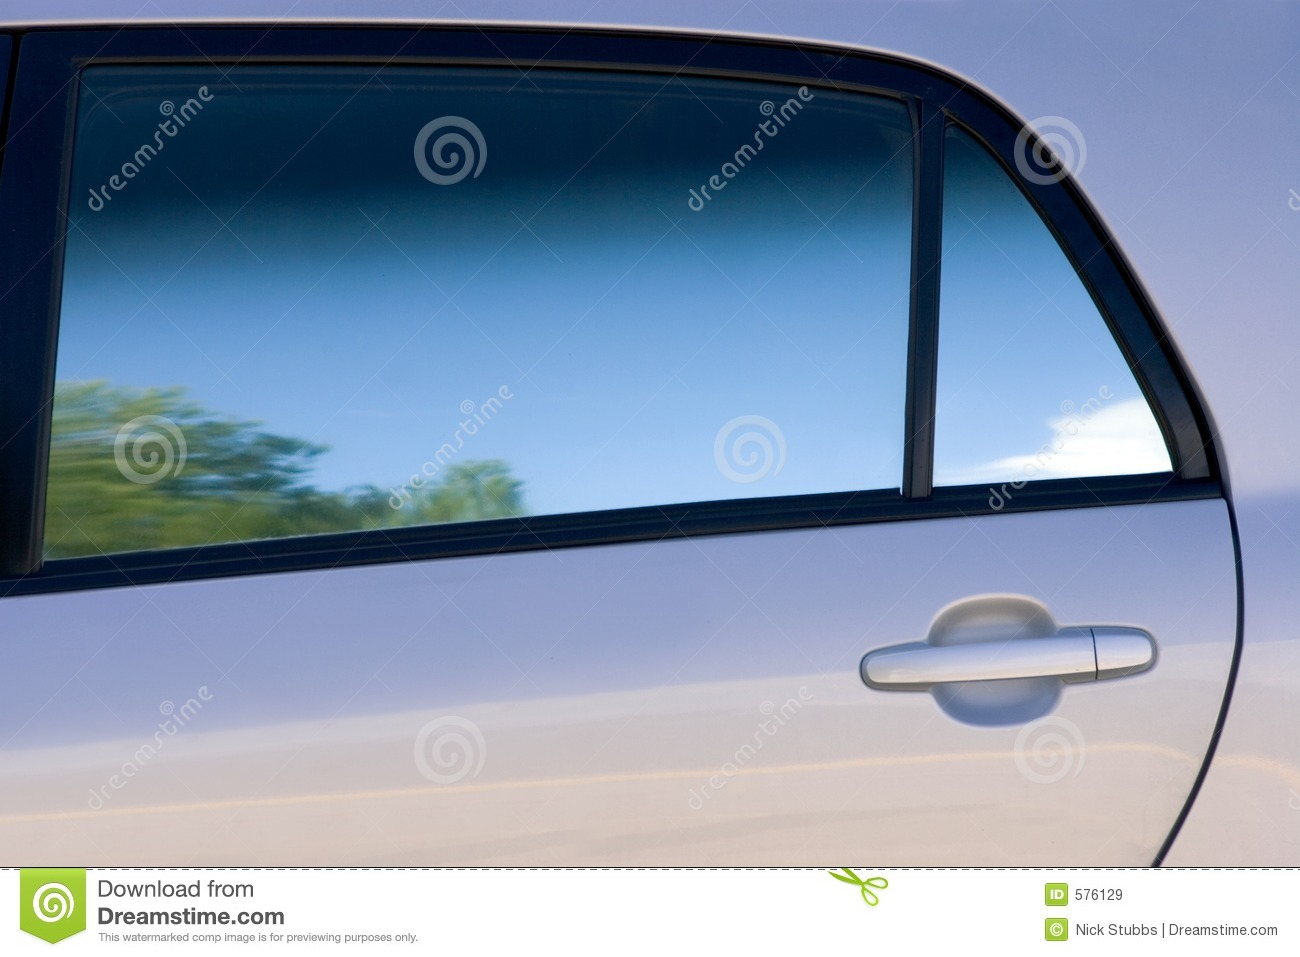 Clean lines and shades of a car door and window stock for The door and the window